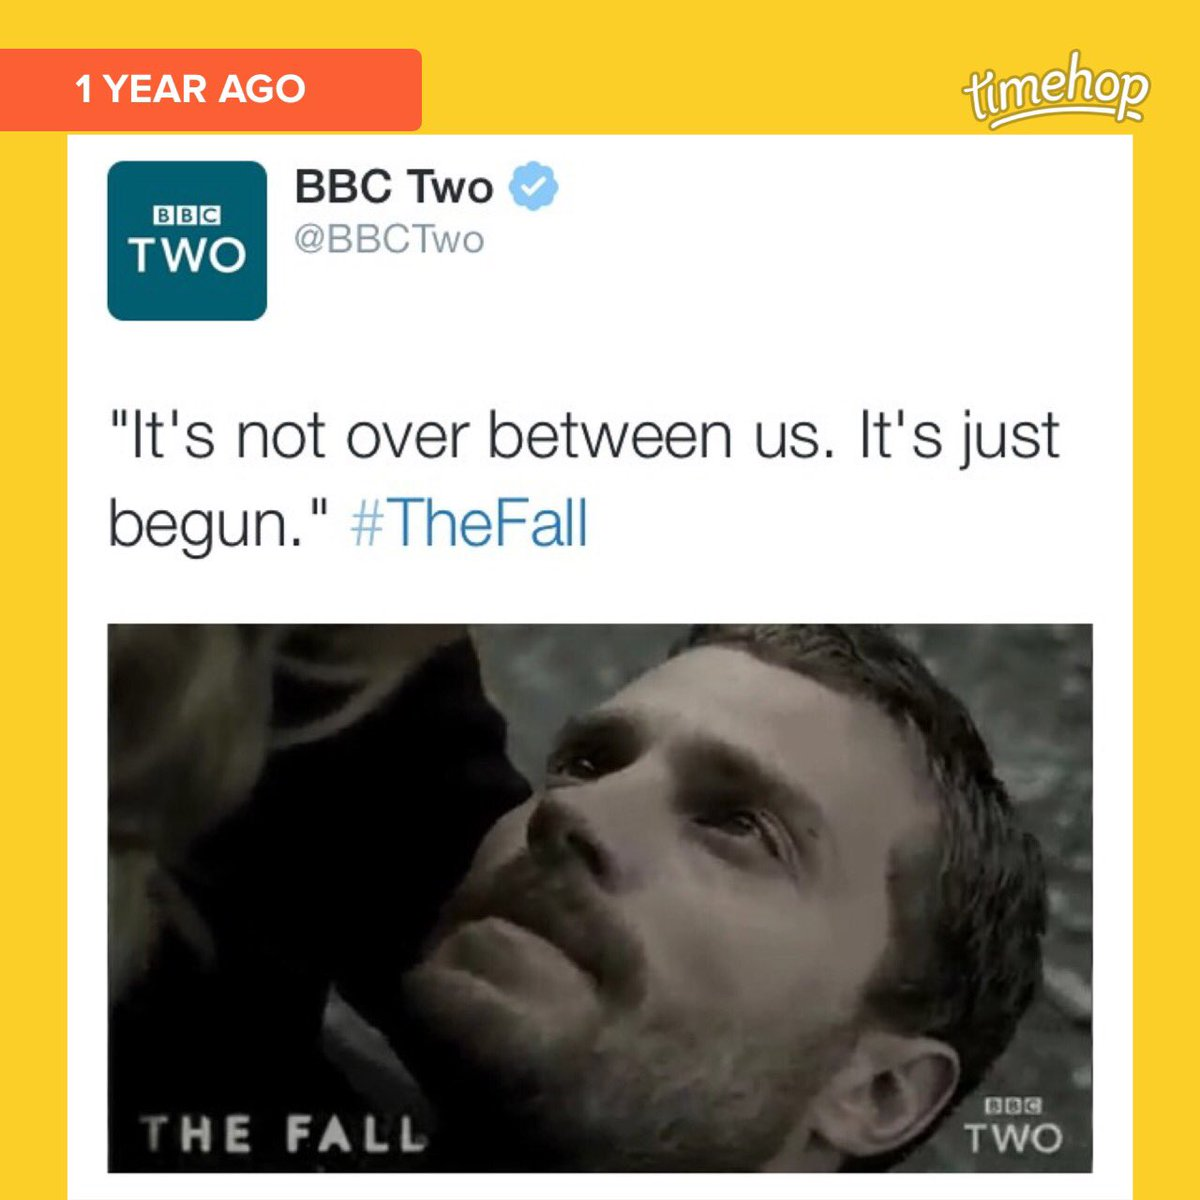 @JamieDornan_org aww, one year ago Season 3 of #TheFall was announced! #jamiedornan https://t.co/XXBLPFz00n